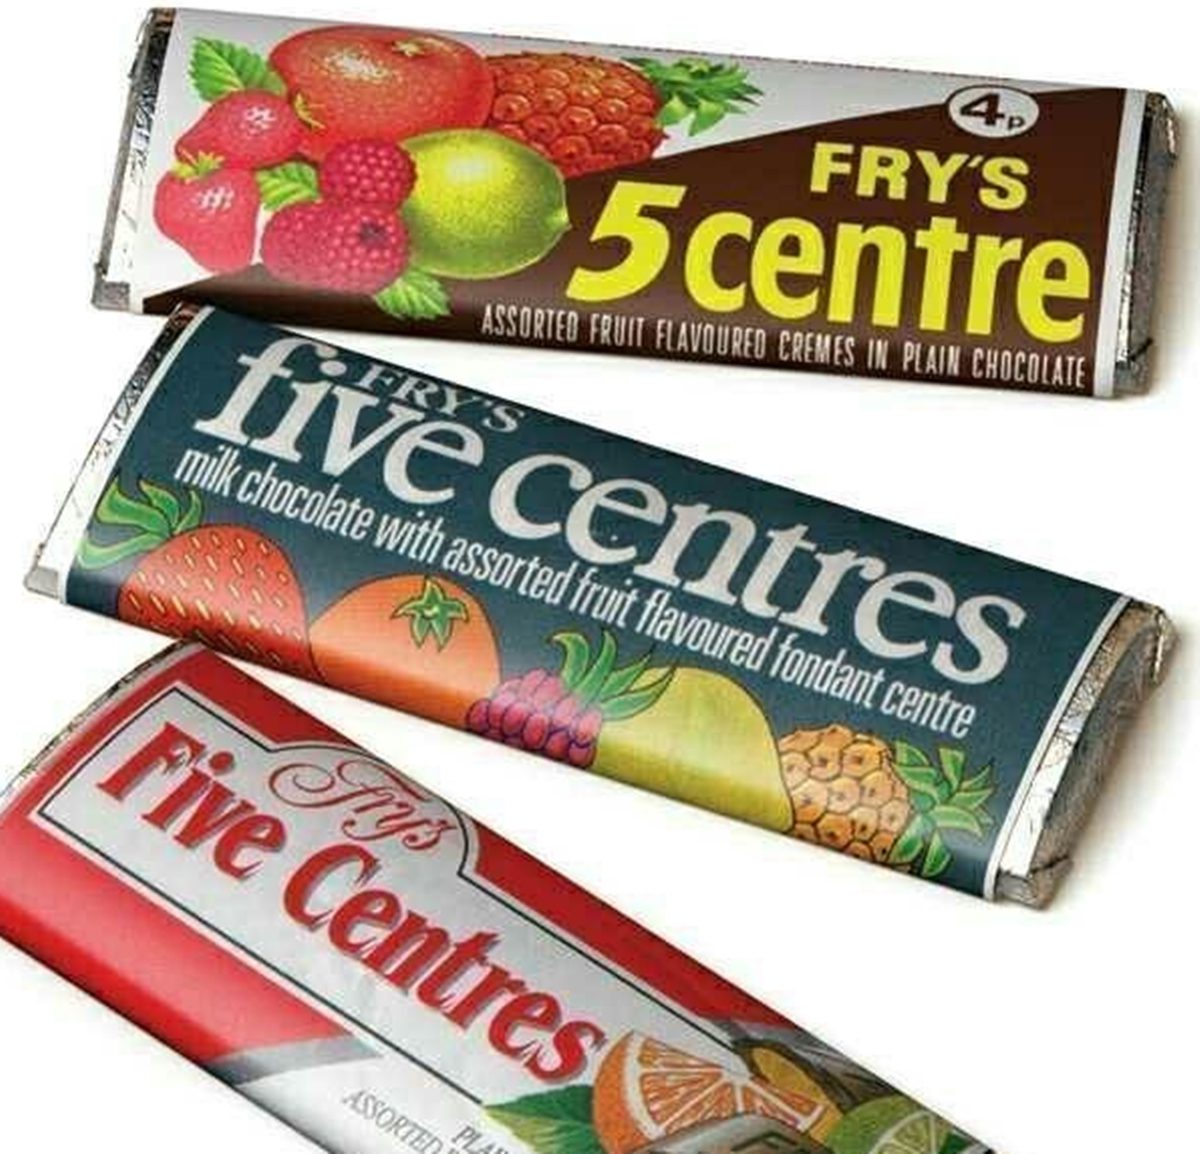 3 7 10 Discontinued Chocolate Bars ALL 80s Kids Would Love To See Again!